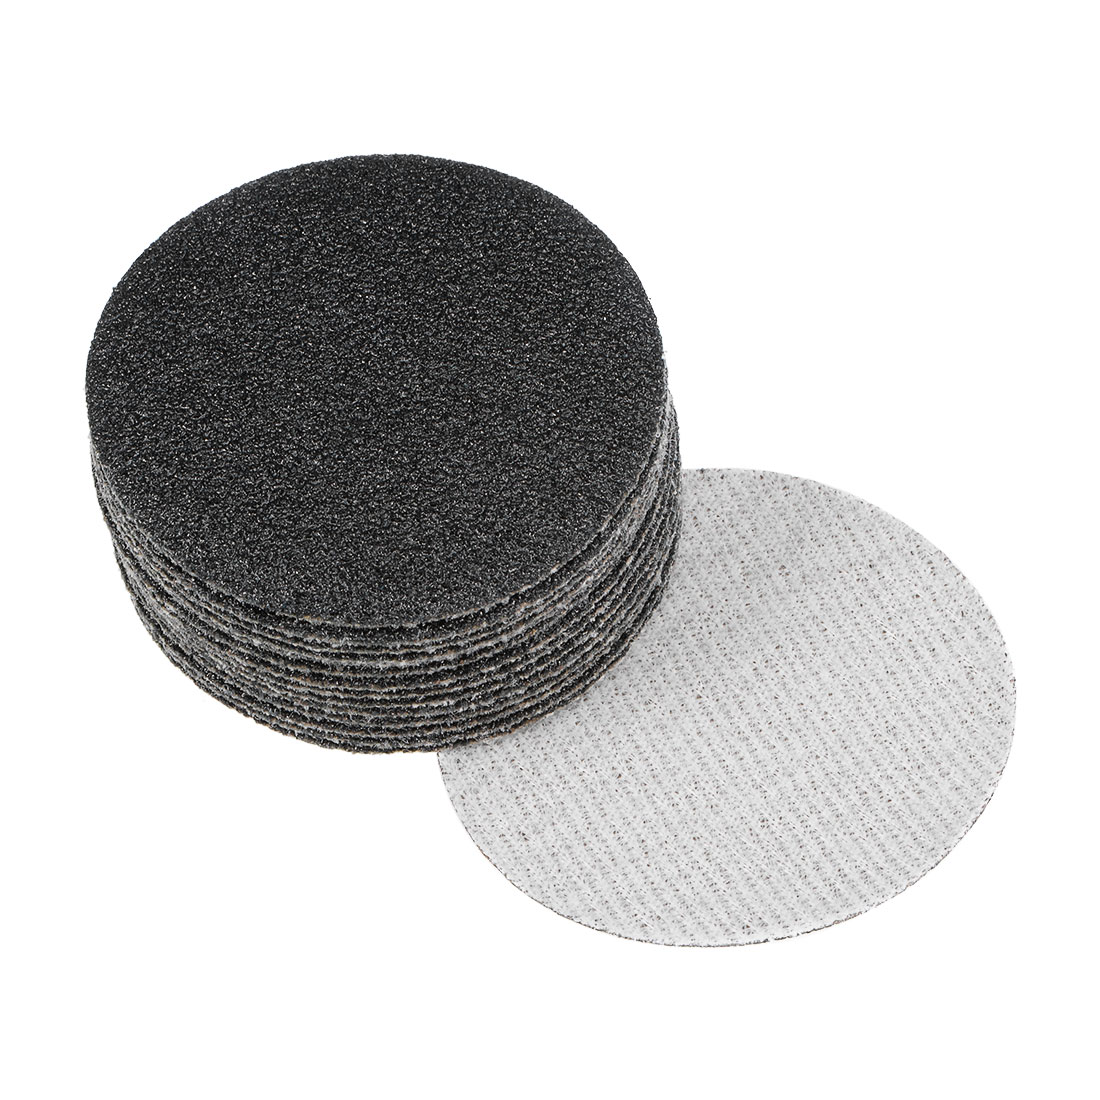 2 inch Wet Dry Discs 80 Grit Hook and Loop Sanding Disc Silicon Carbide 15pcs